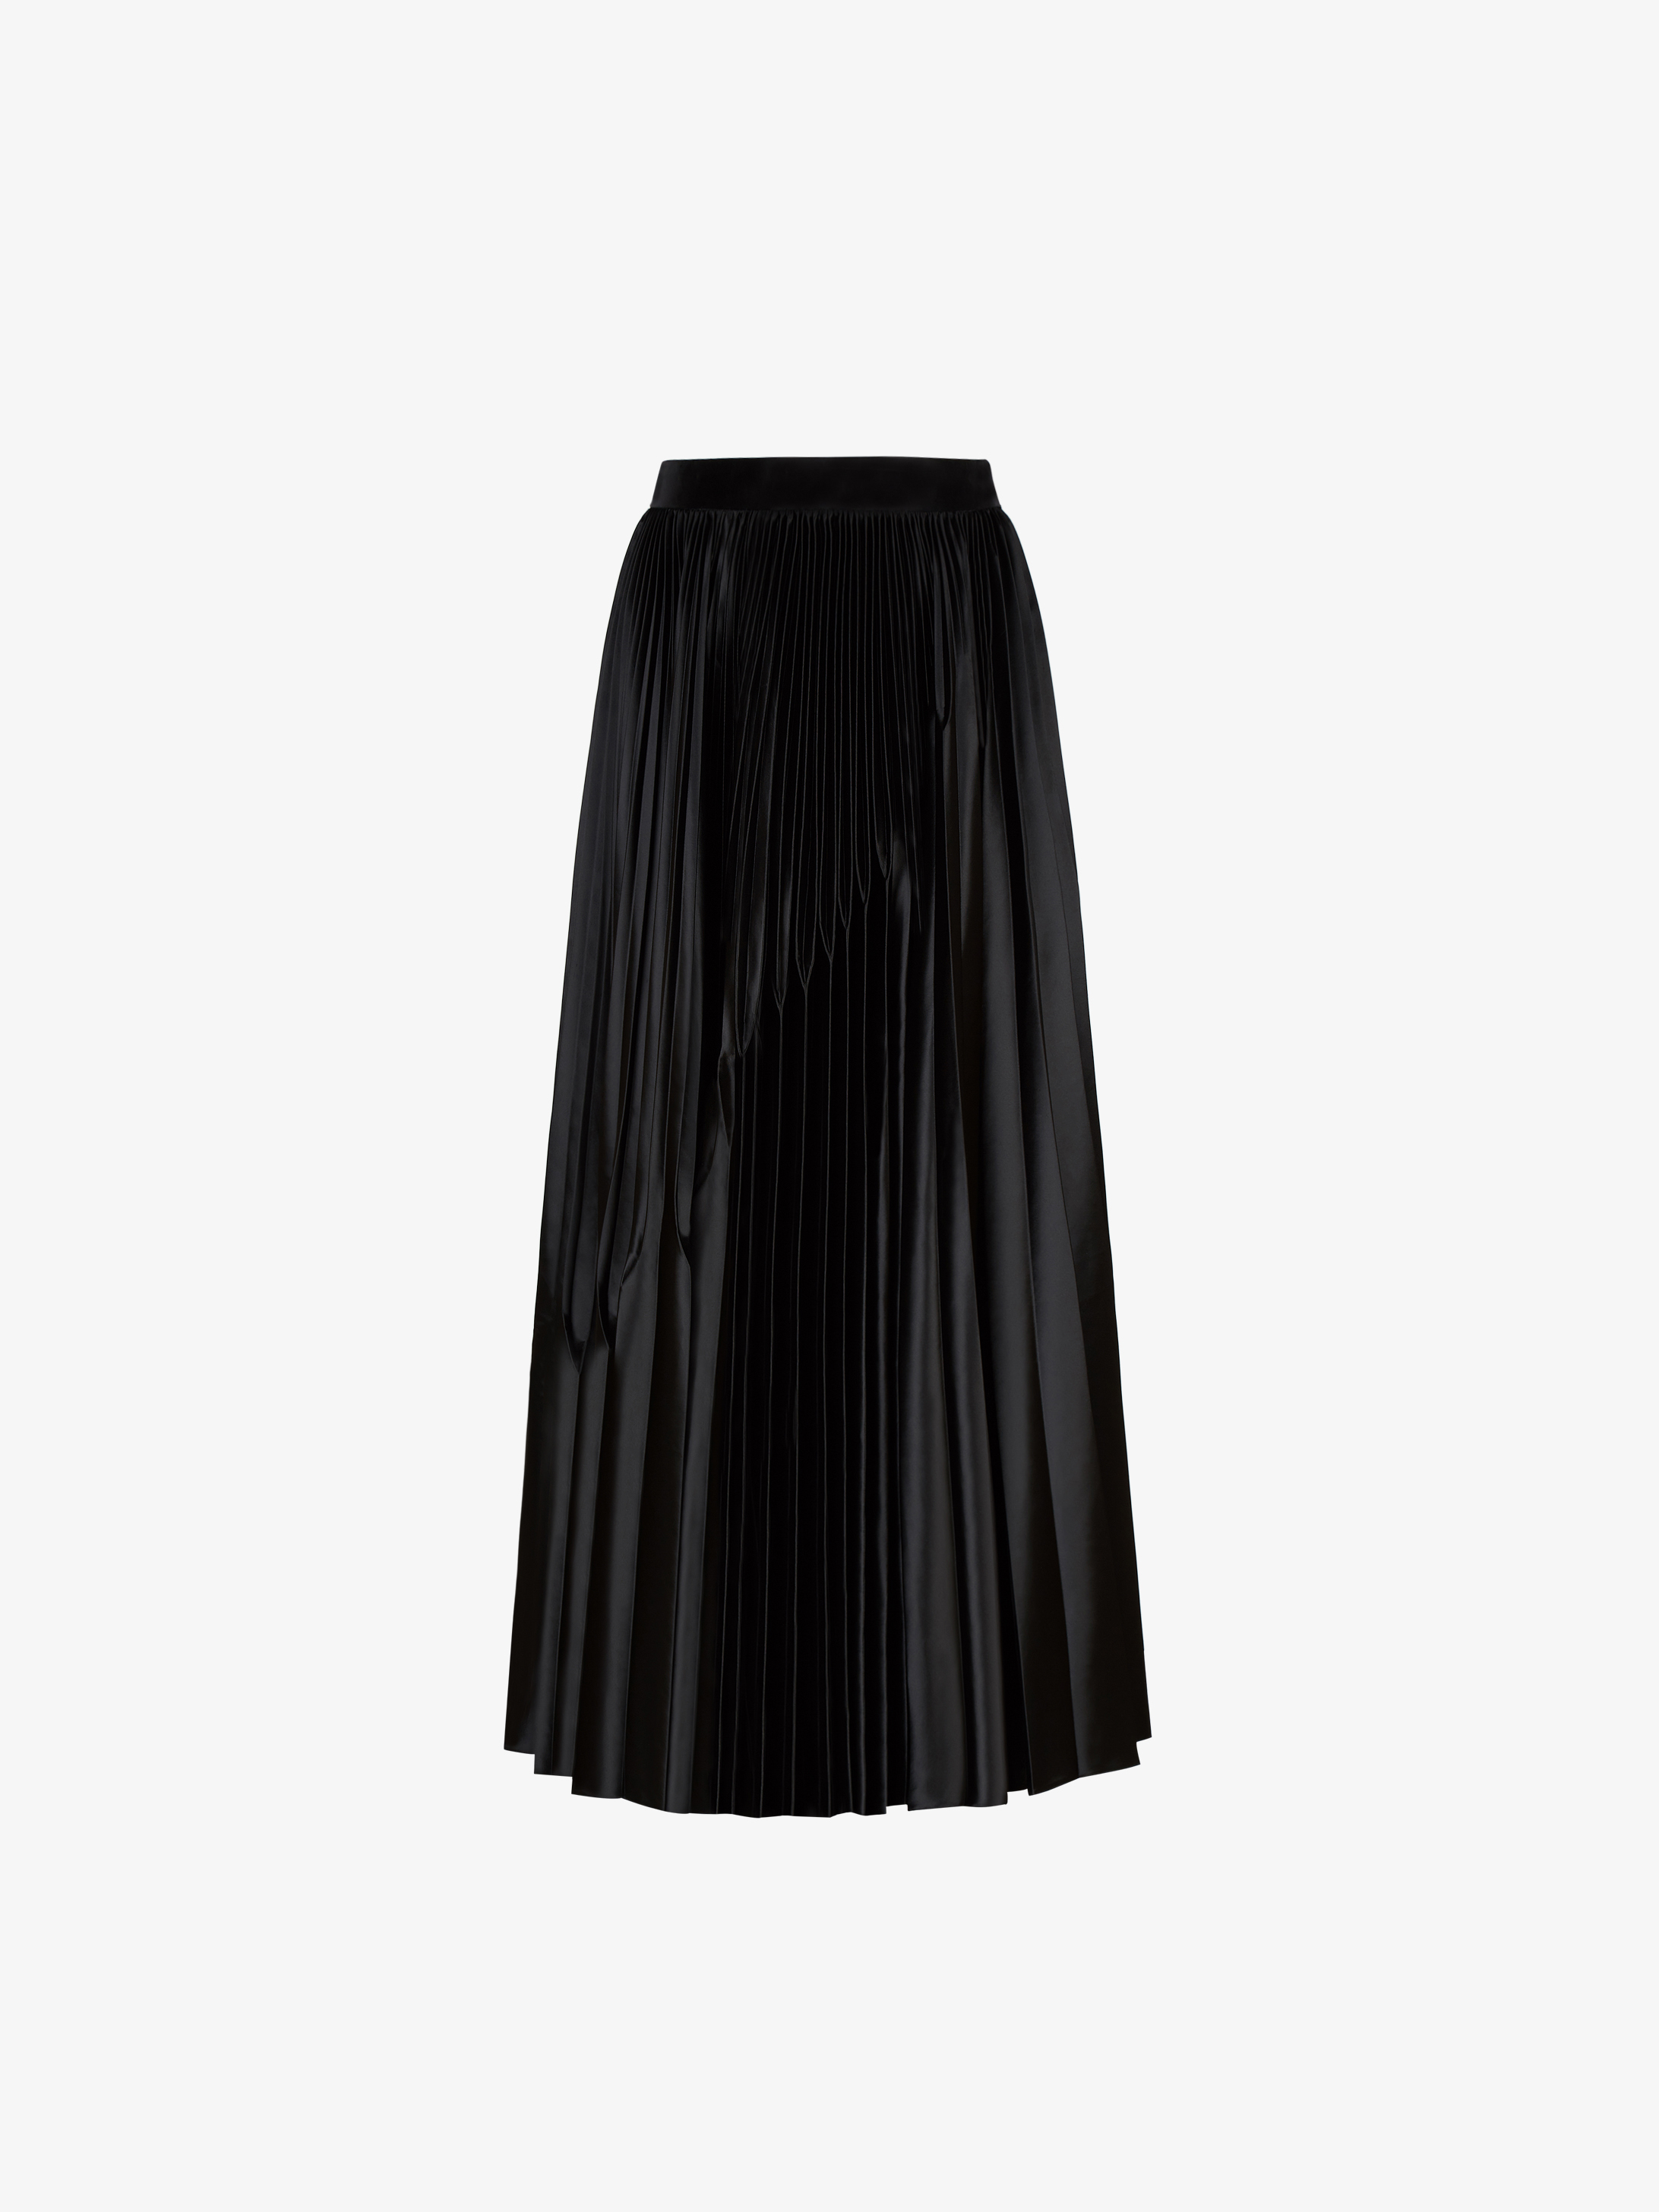 GIVENCHY pleated skirt in varnished jersey